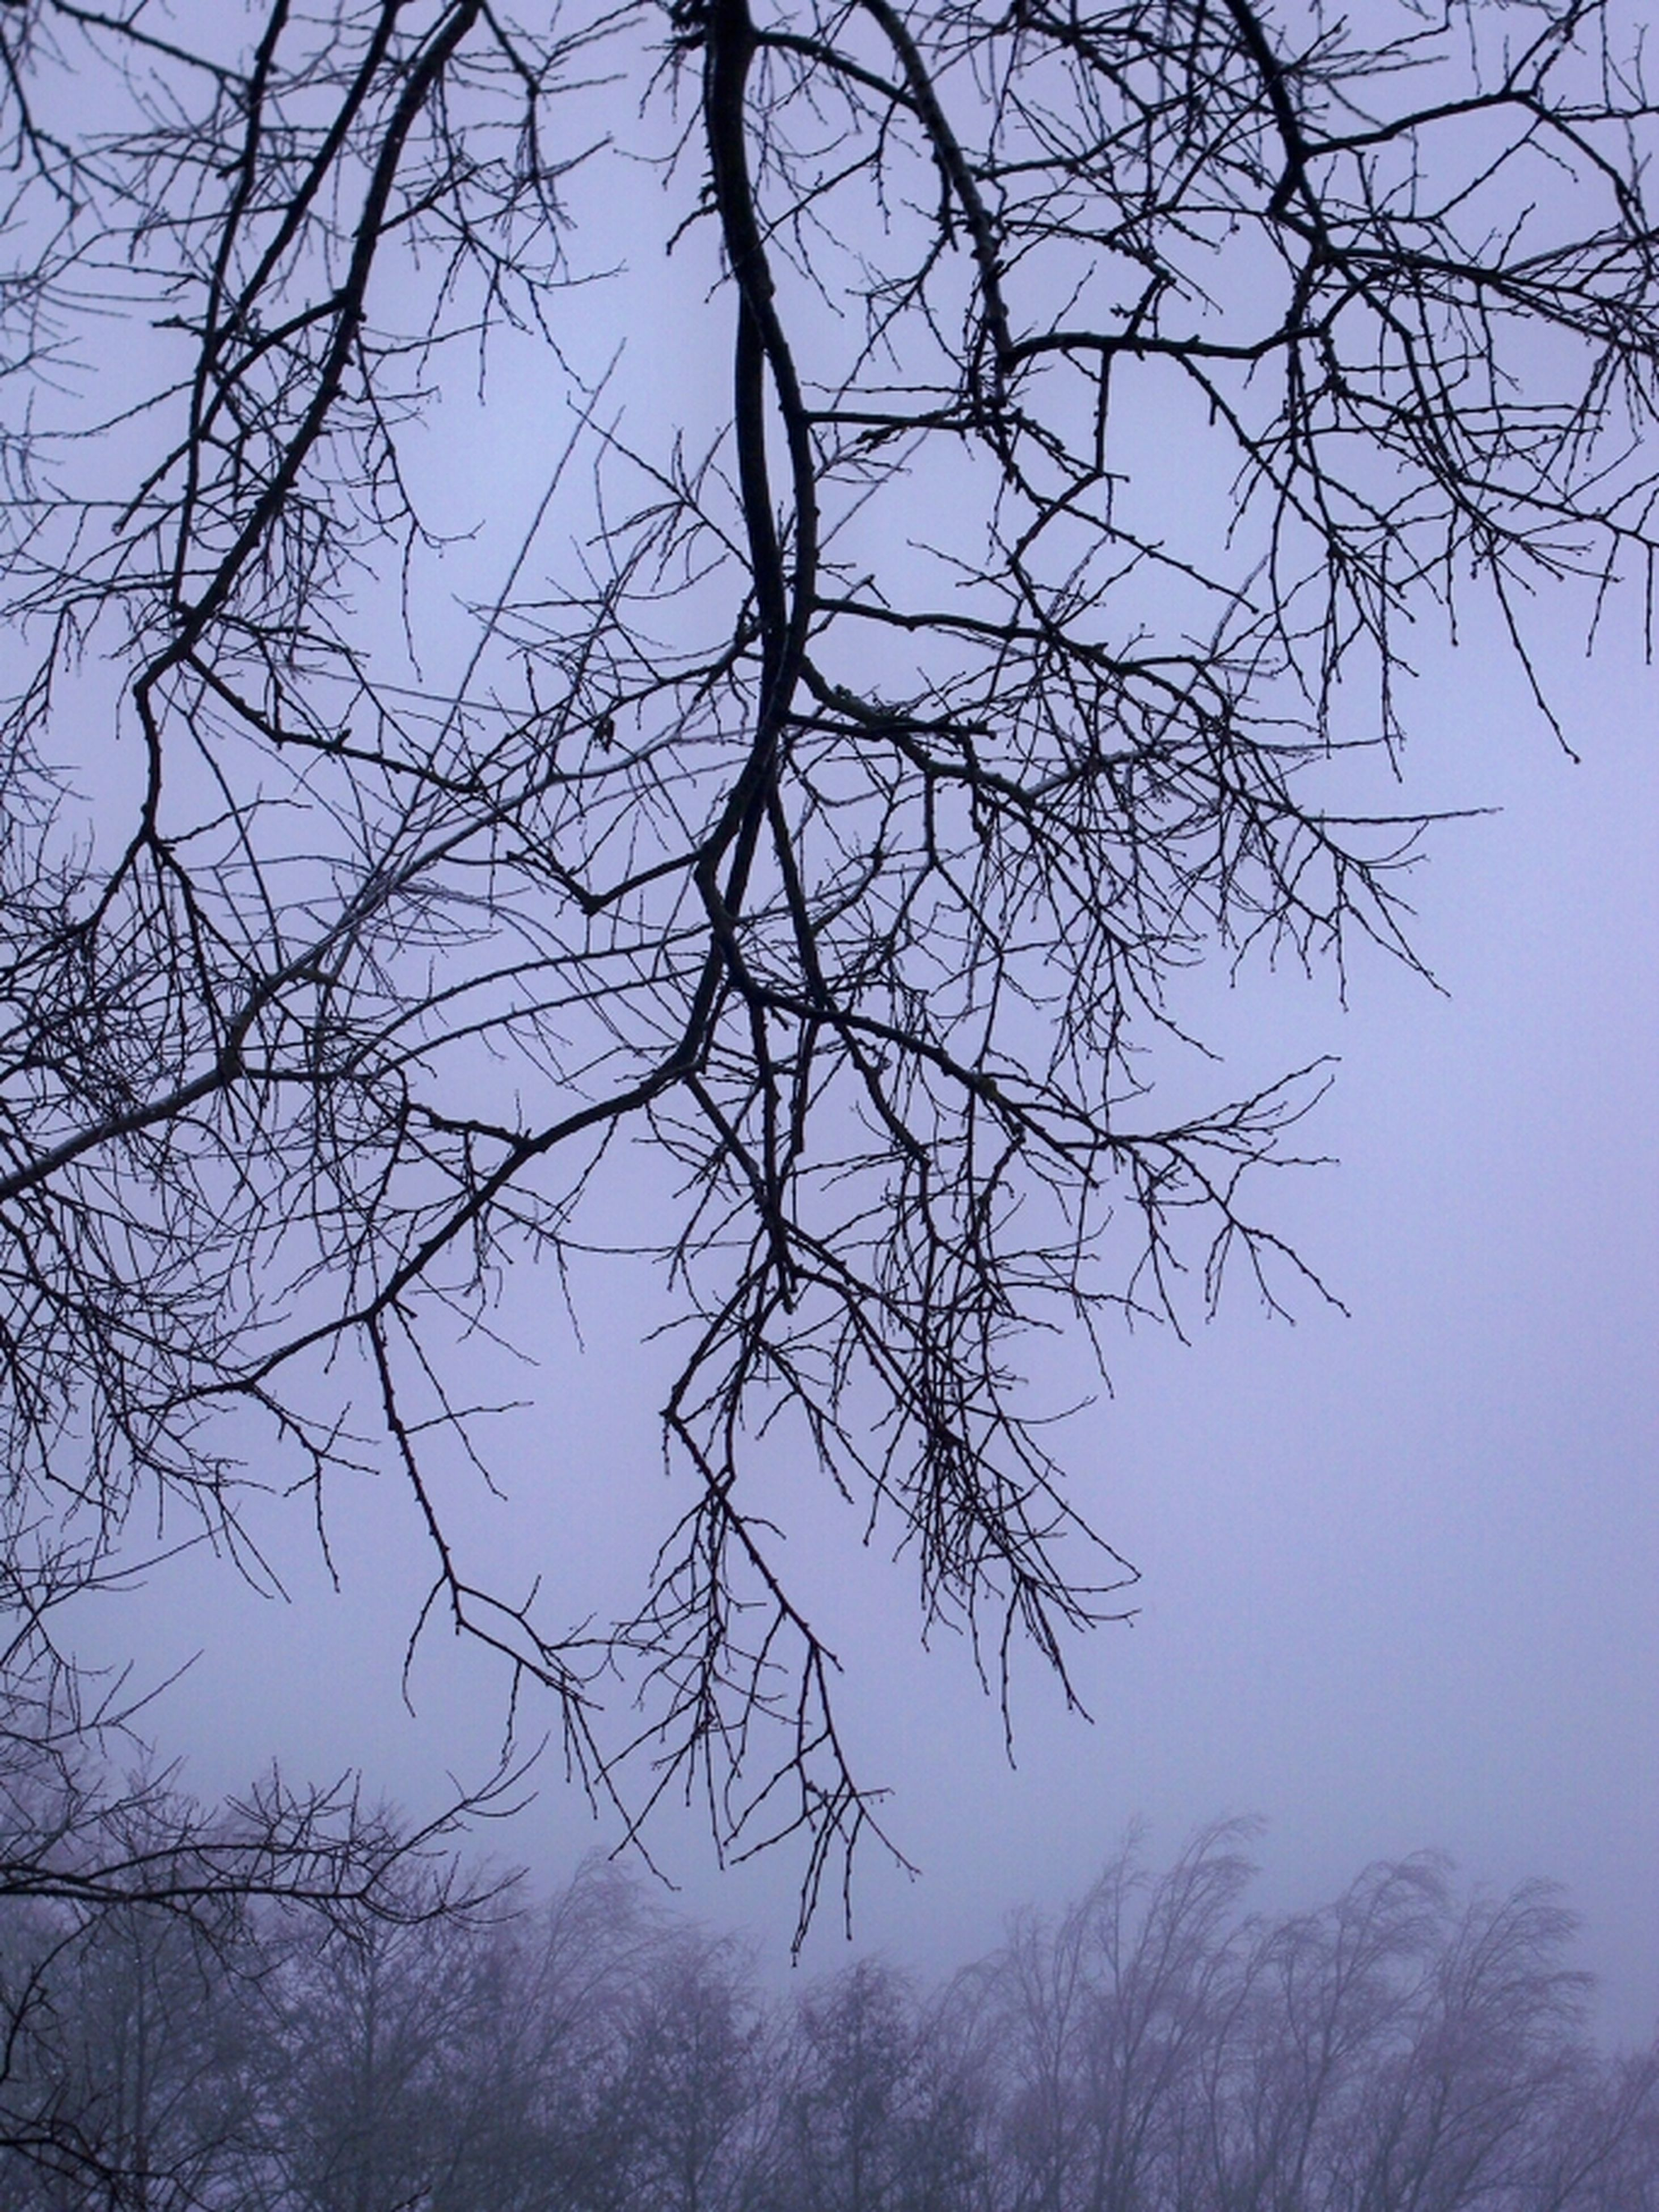 bare tree, branch, tree, tranquility, sky, nature, tranquil scene, scenics, beauty in nature, silhouette, low angle view, tree trunk, outdoors, no people, growth, clear sky, dusk, non-urban scene, day, winter